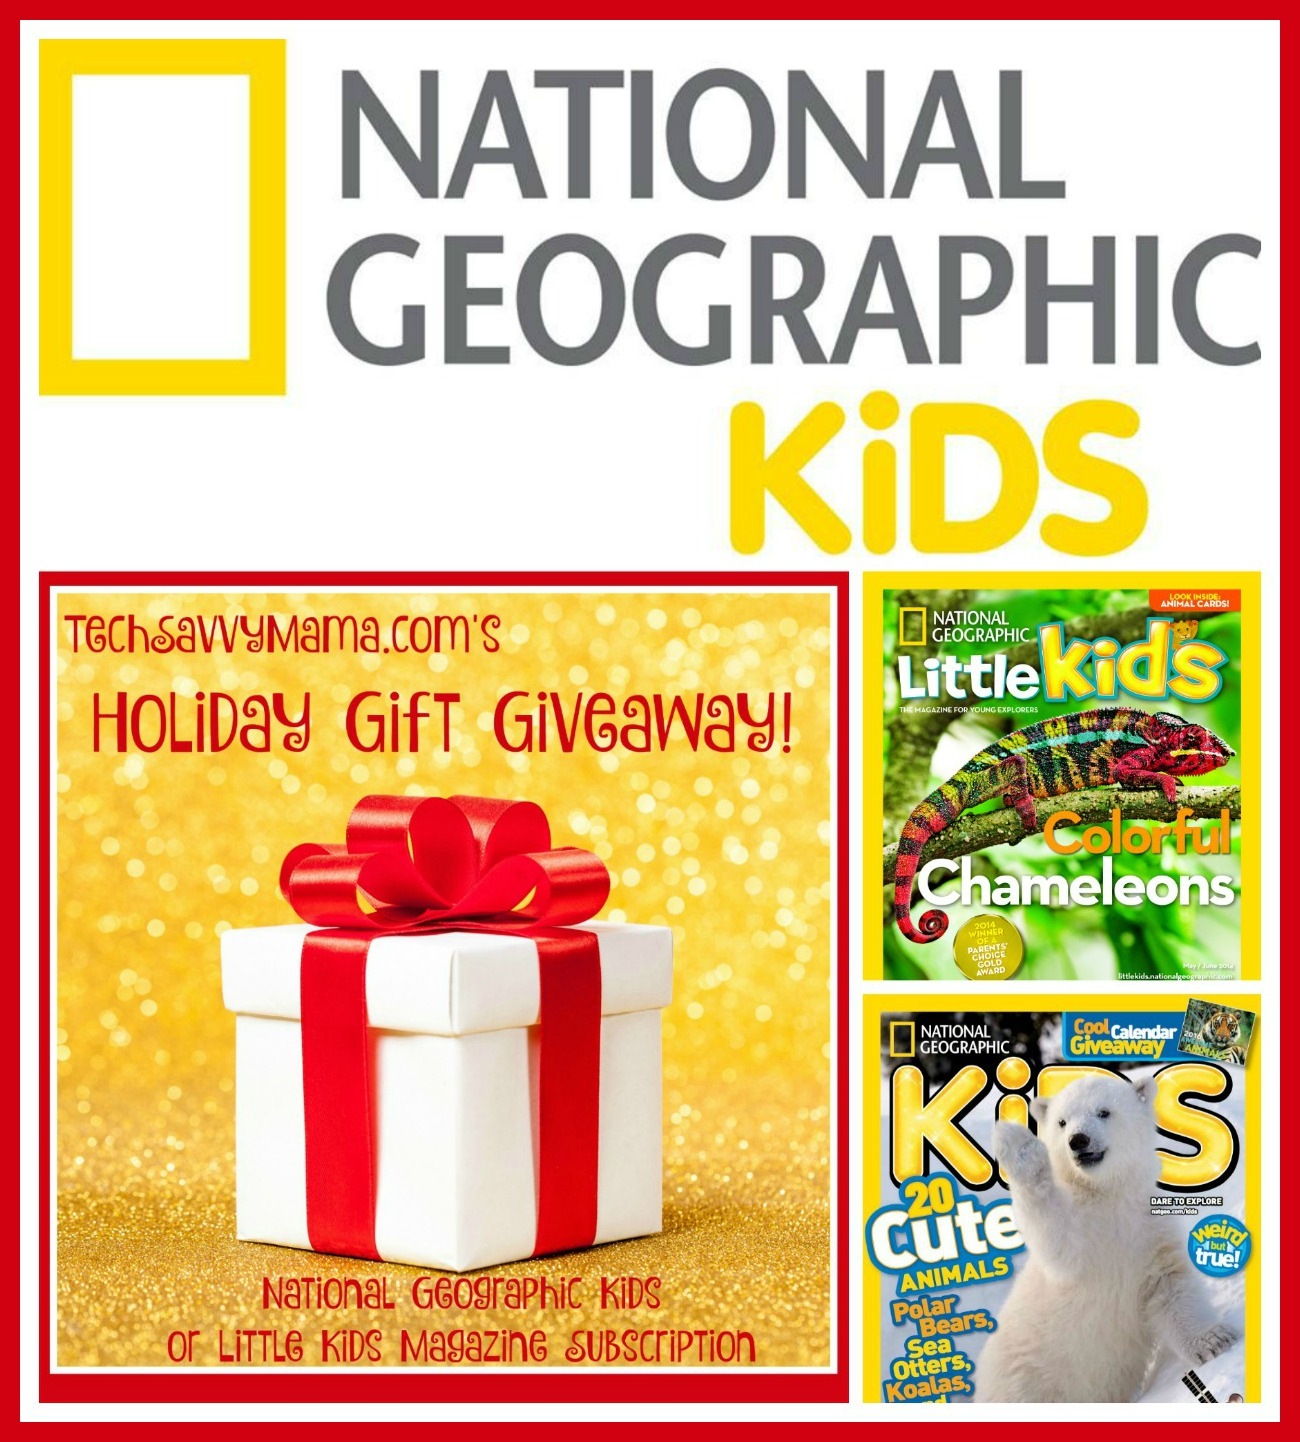 GIVEAWAY: National Geographic Kids Or Little Kids Magazine